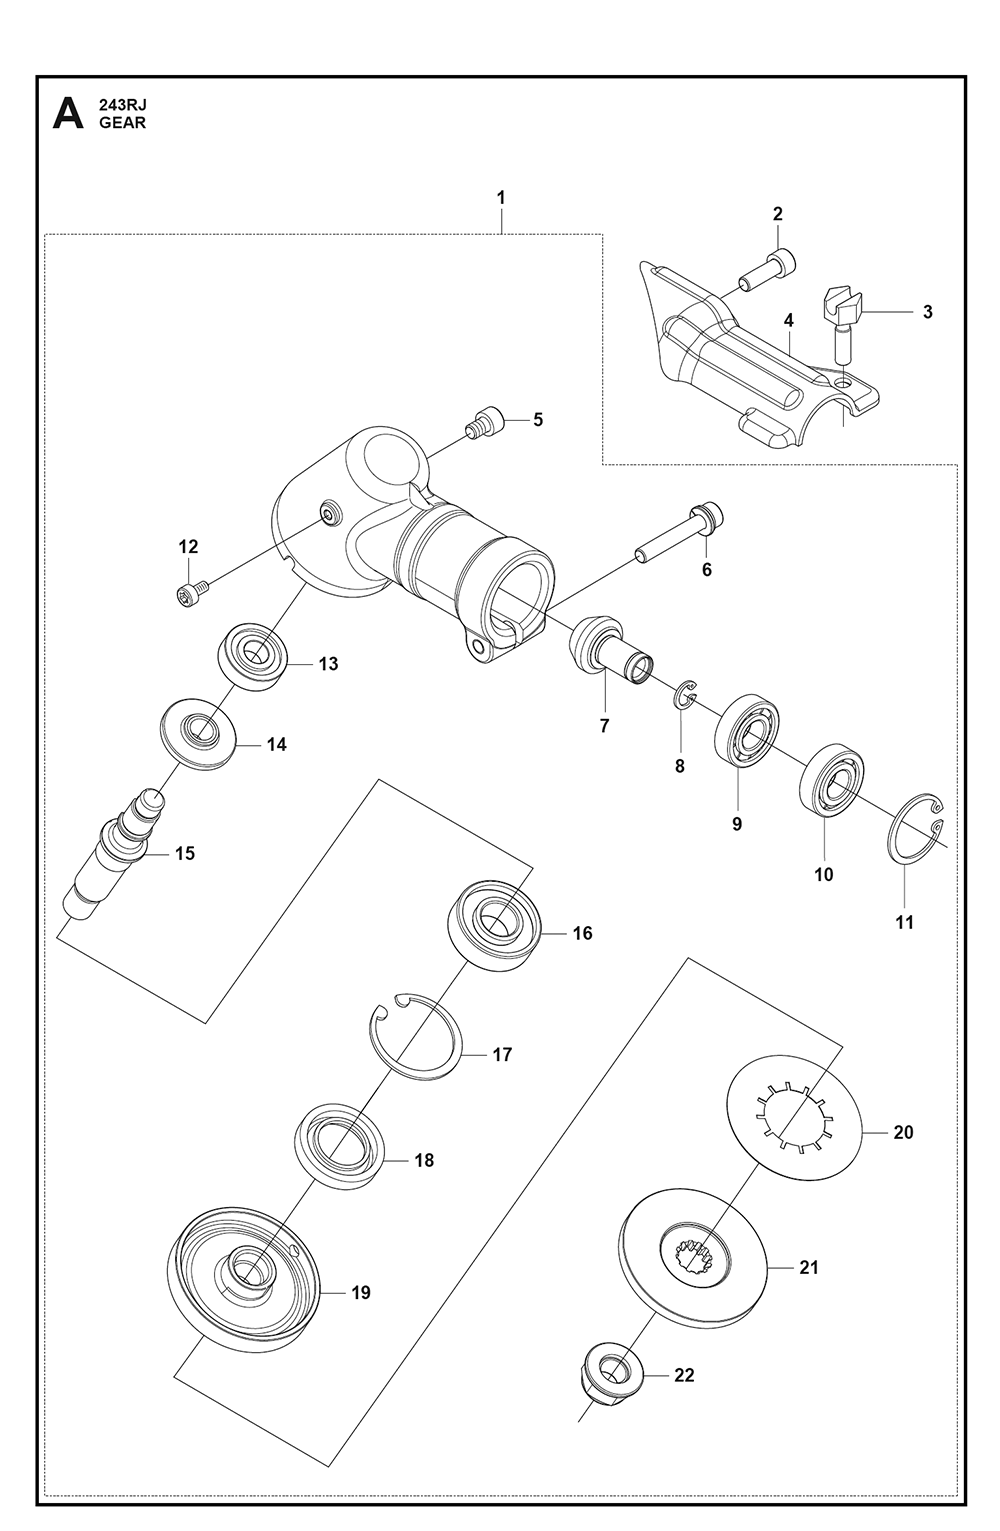 hight resolution of husqvarna 243 rj 25 parts schematic